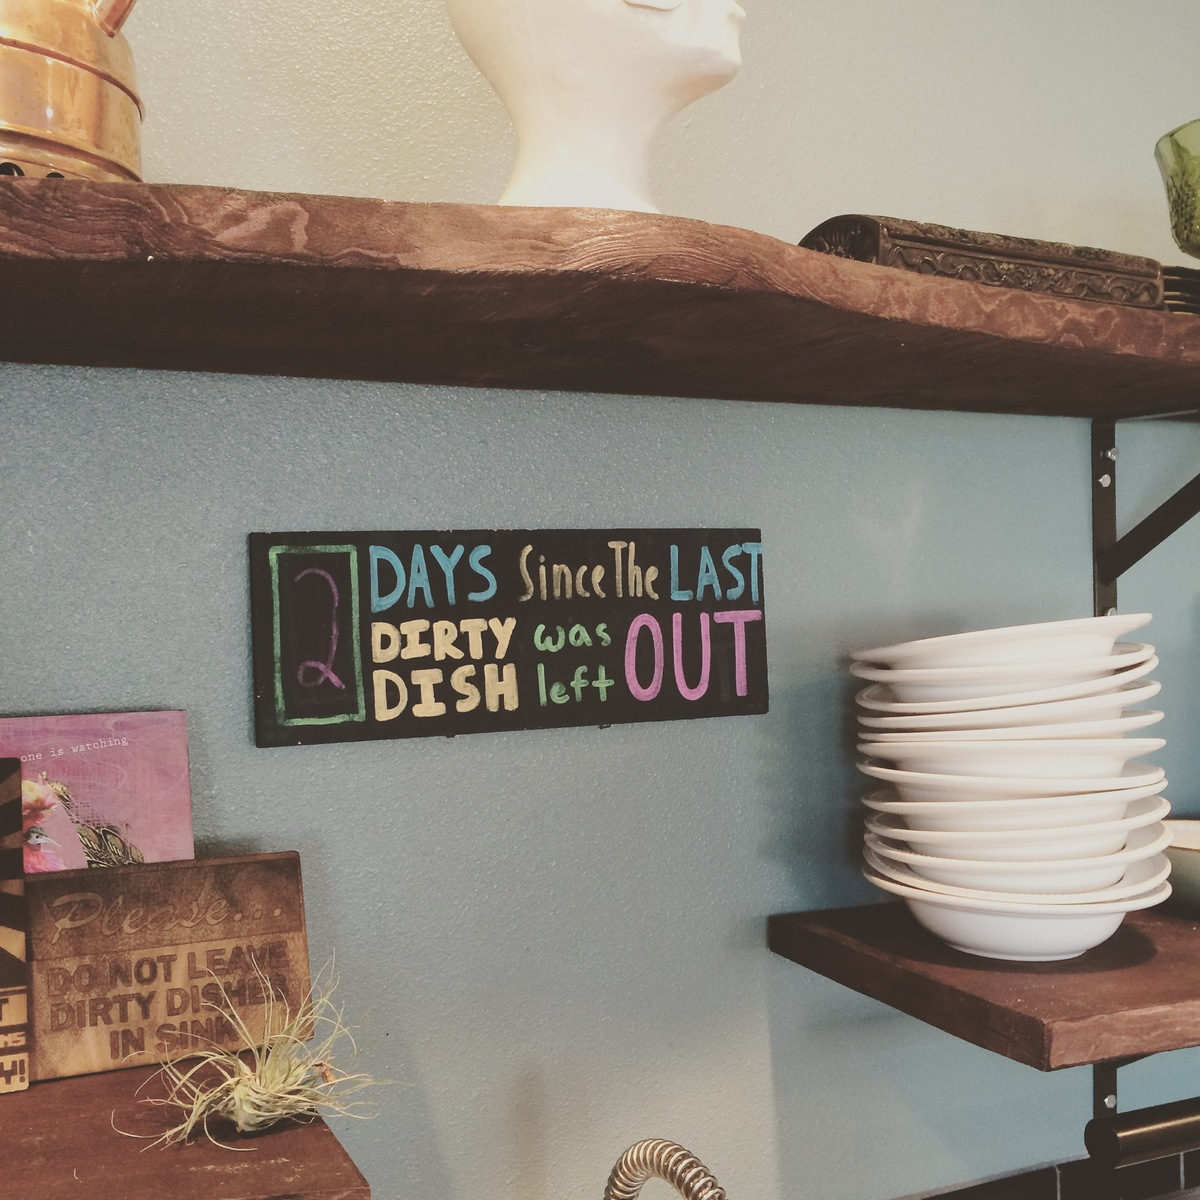 Helpful reminders at OpenDoor's Canopy location. Photo courtesy of Jay Standish/OpenDoor.